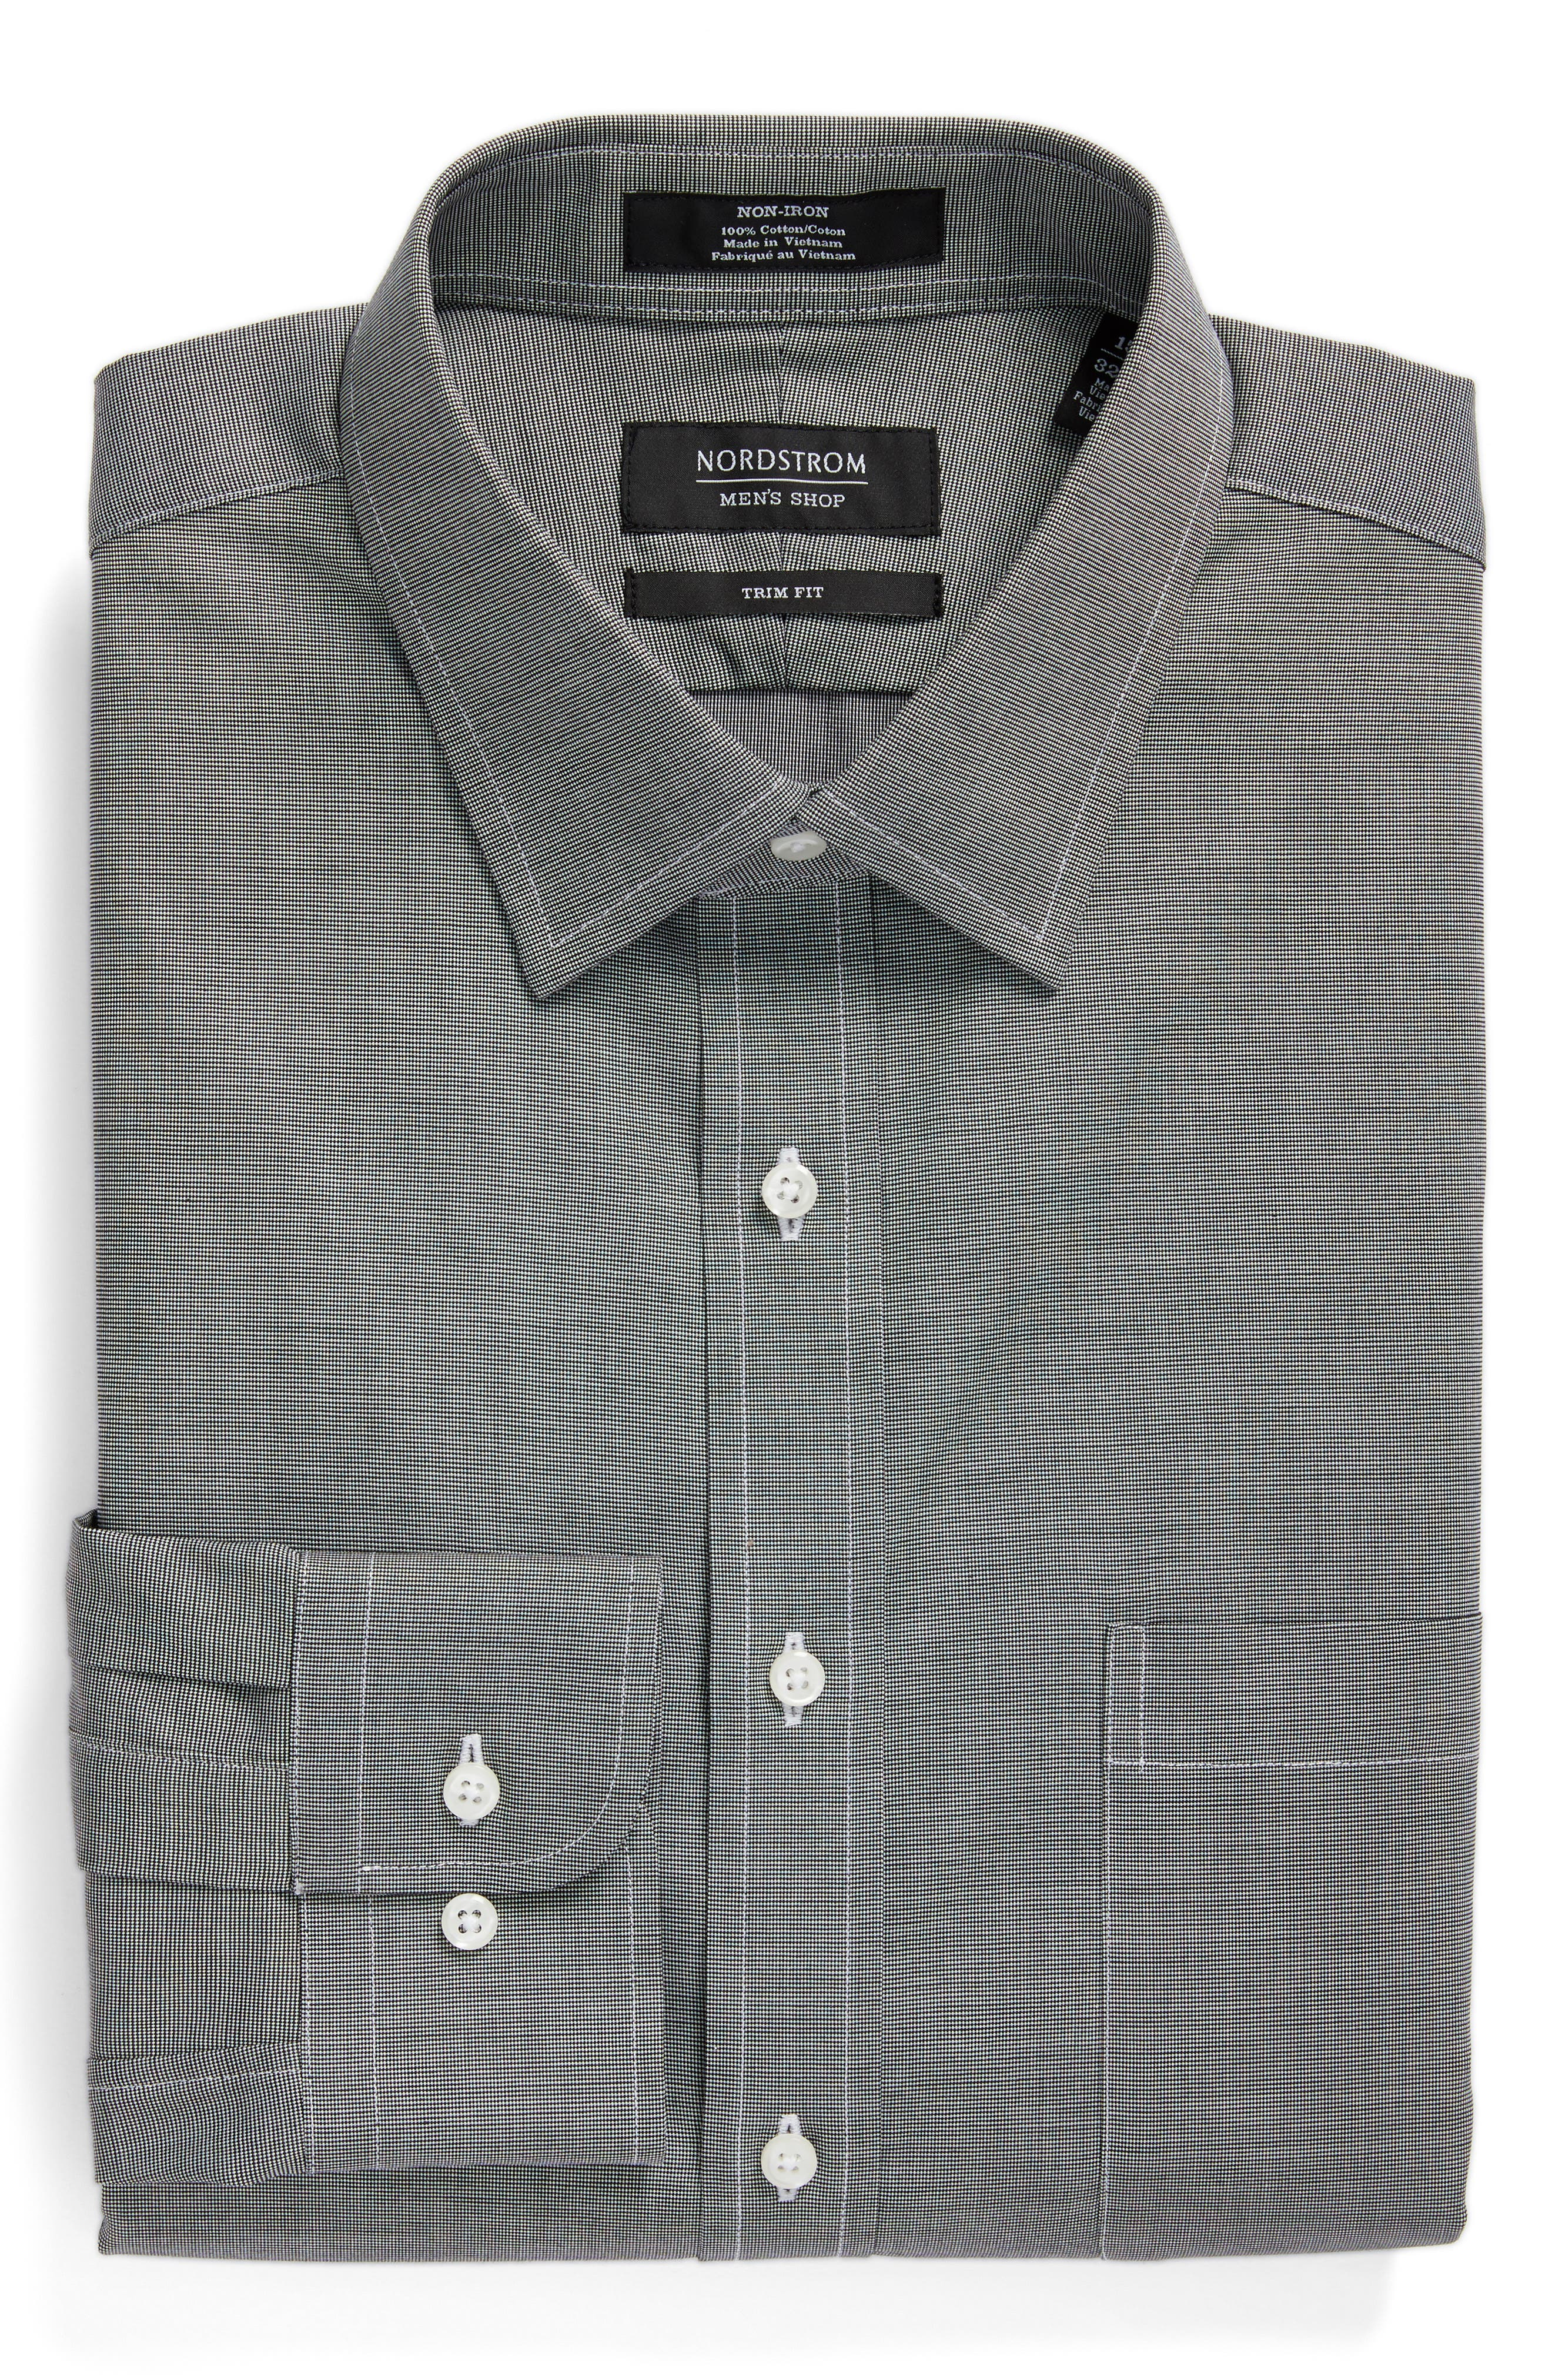 Non-Iron Dress Shirts for Men | Nordstrom